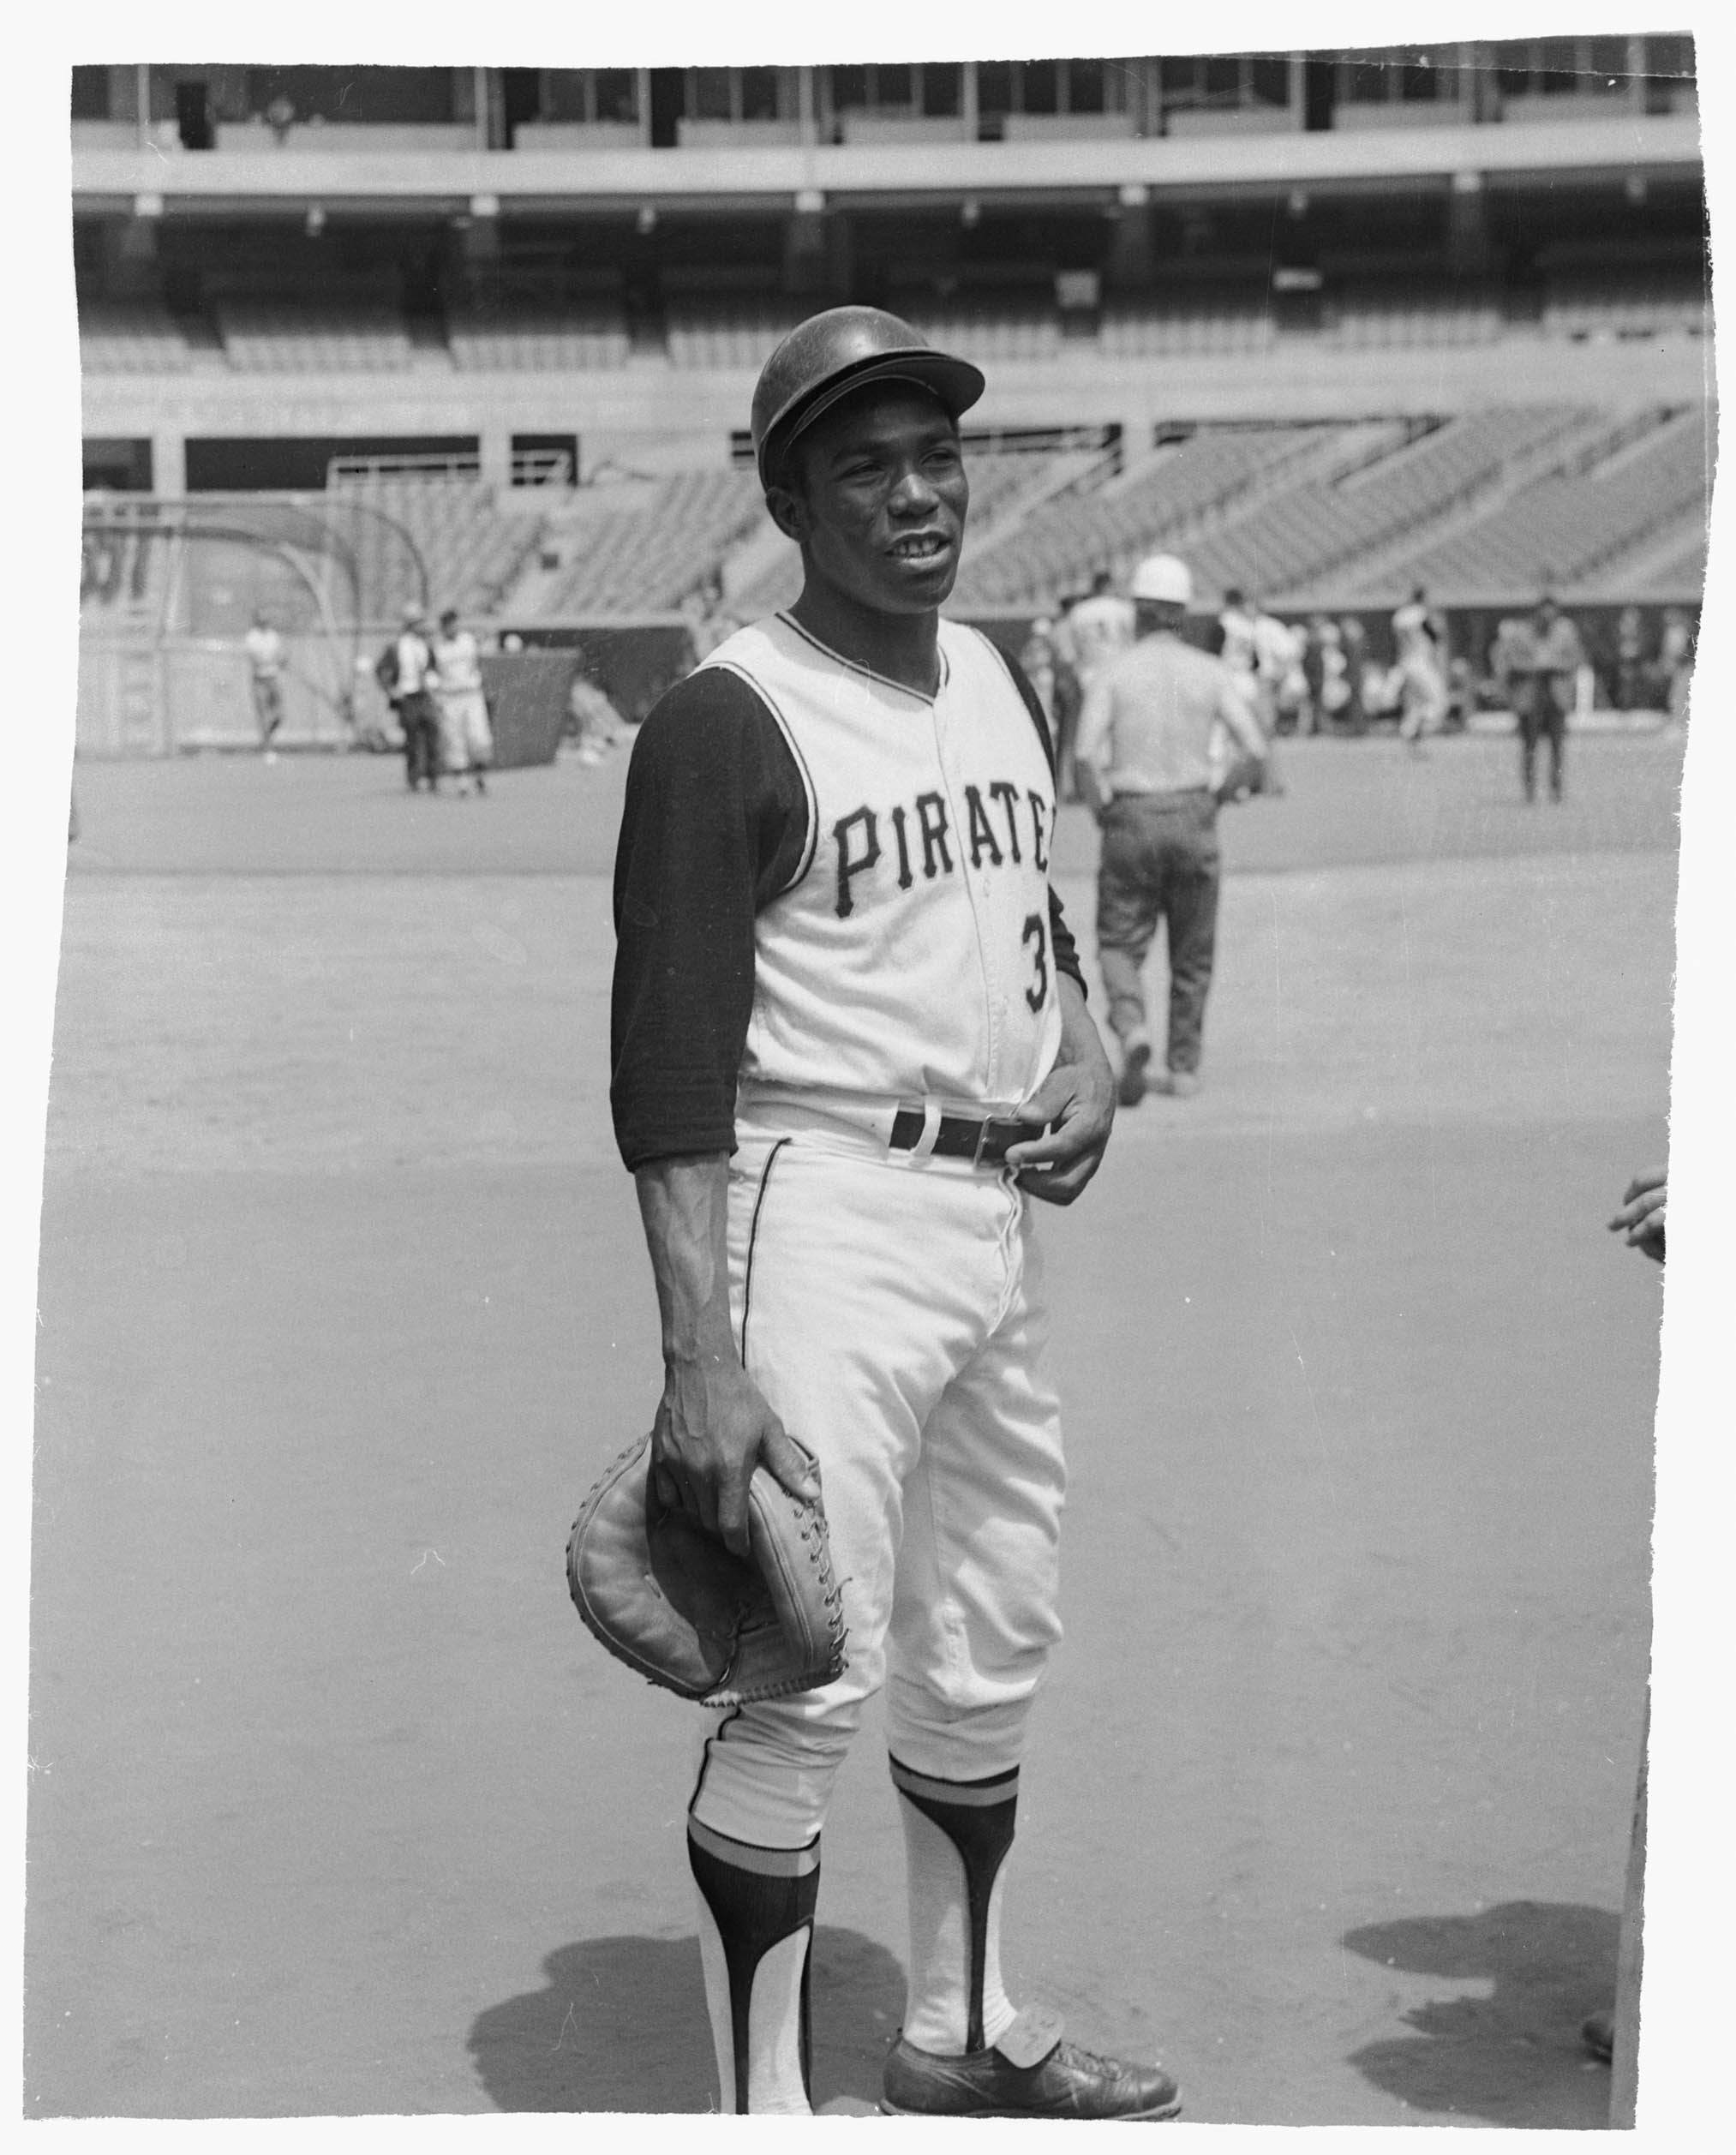 Pittsburgh Pirates baseball player Manny Sanguillen with catcher's mitt,  posing at Three Rivers Stadium | CMOA Collection